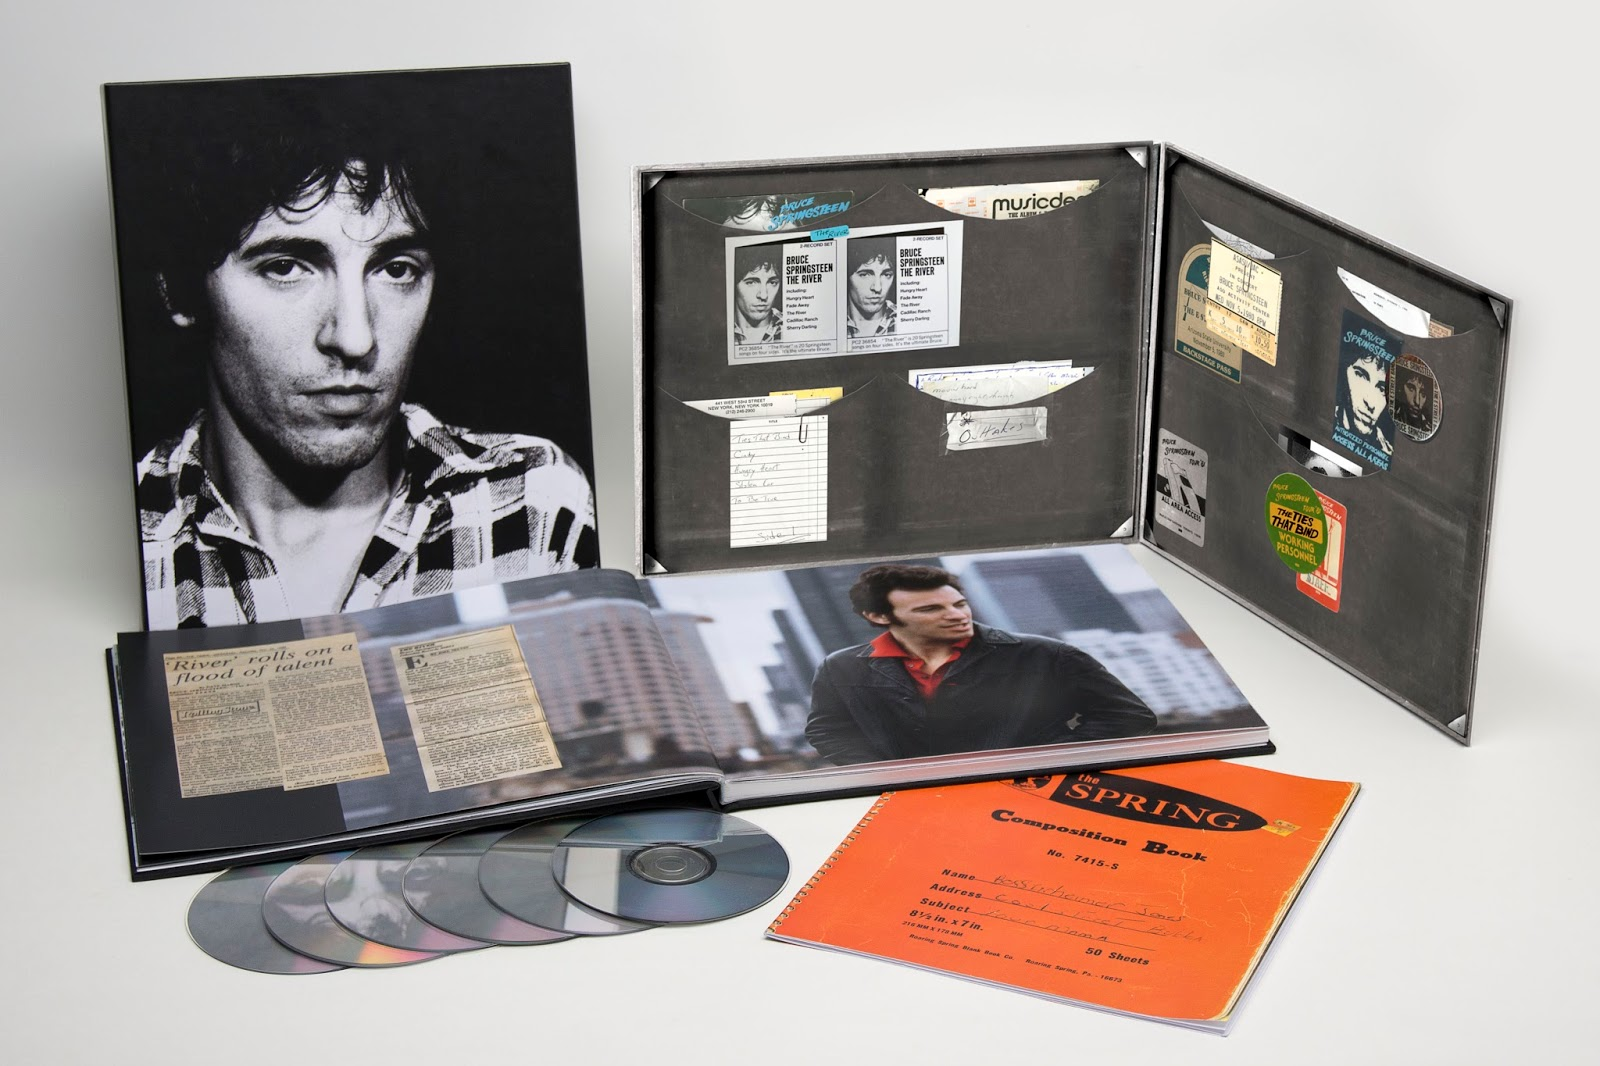 Springsteen.The+River.box+set.contents.2015